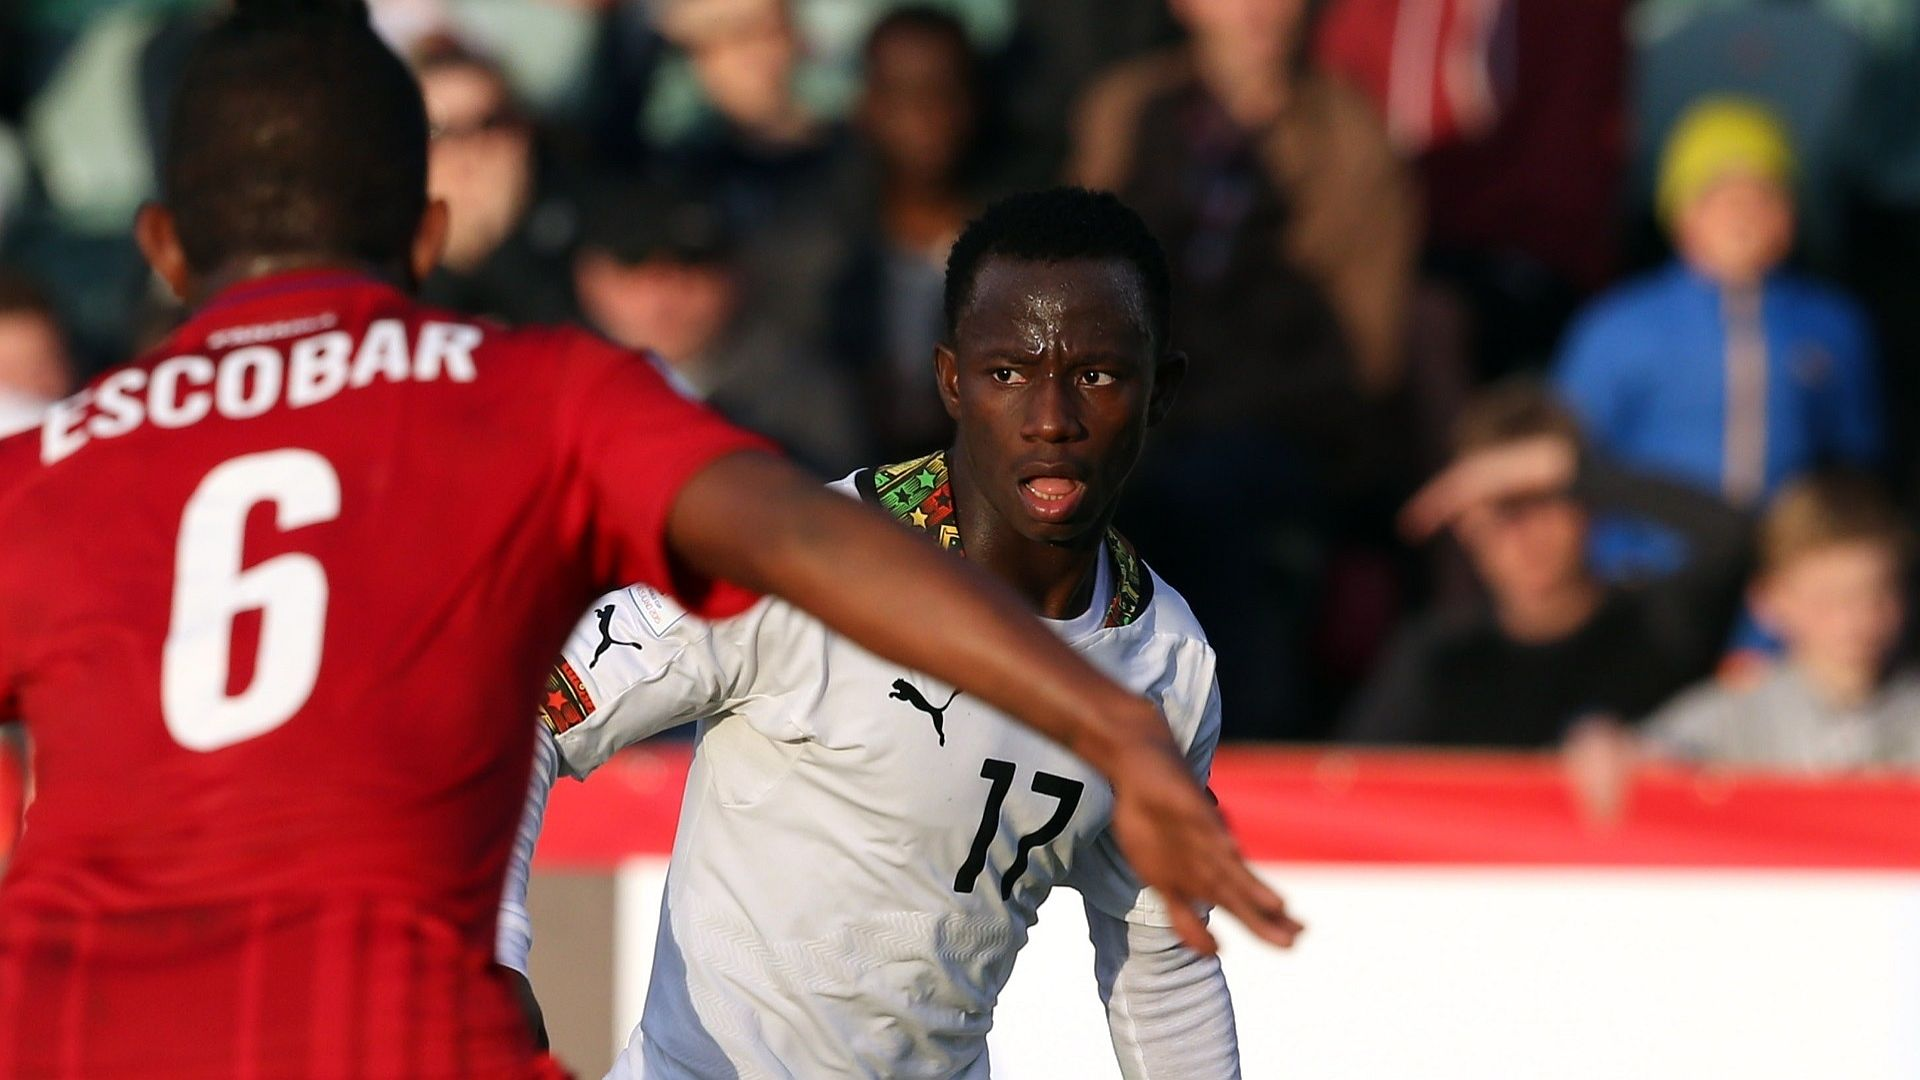 U23 Afcon qualifiers: Algeria 0-1 Ghana (Agg: 1-2) - Yaw Yeboah's strike earns Black Meteors historic qualification